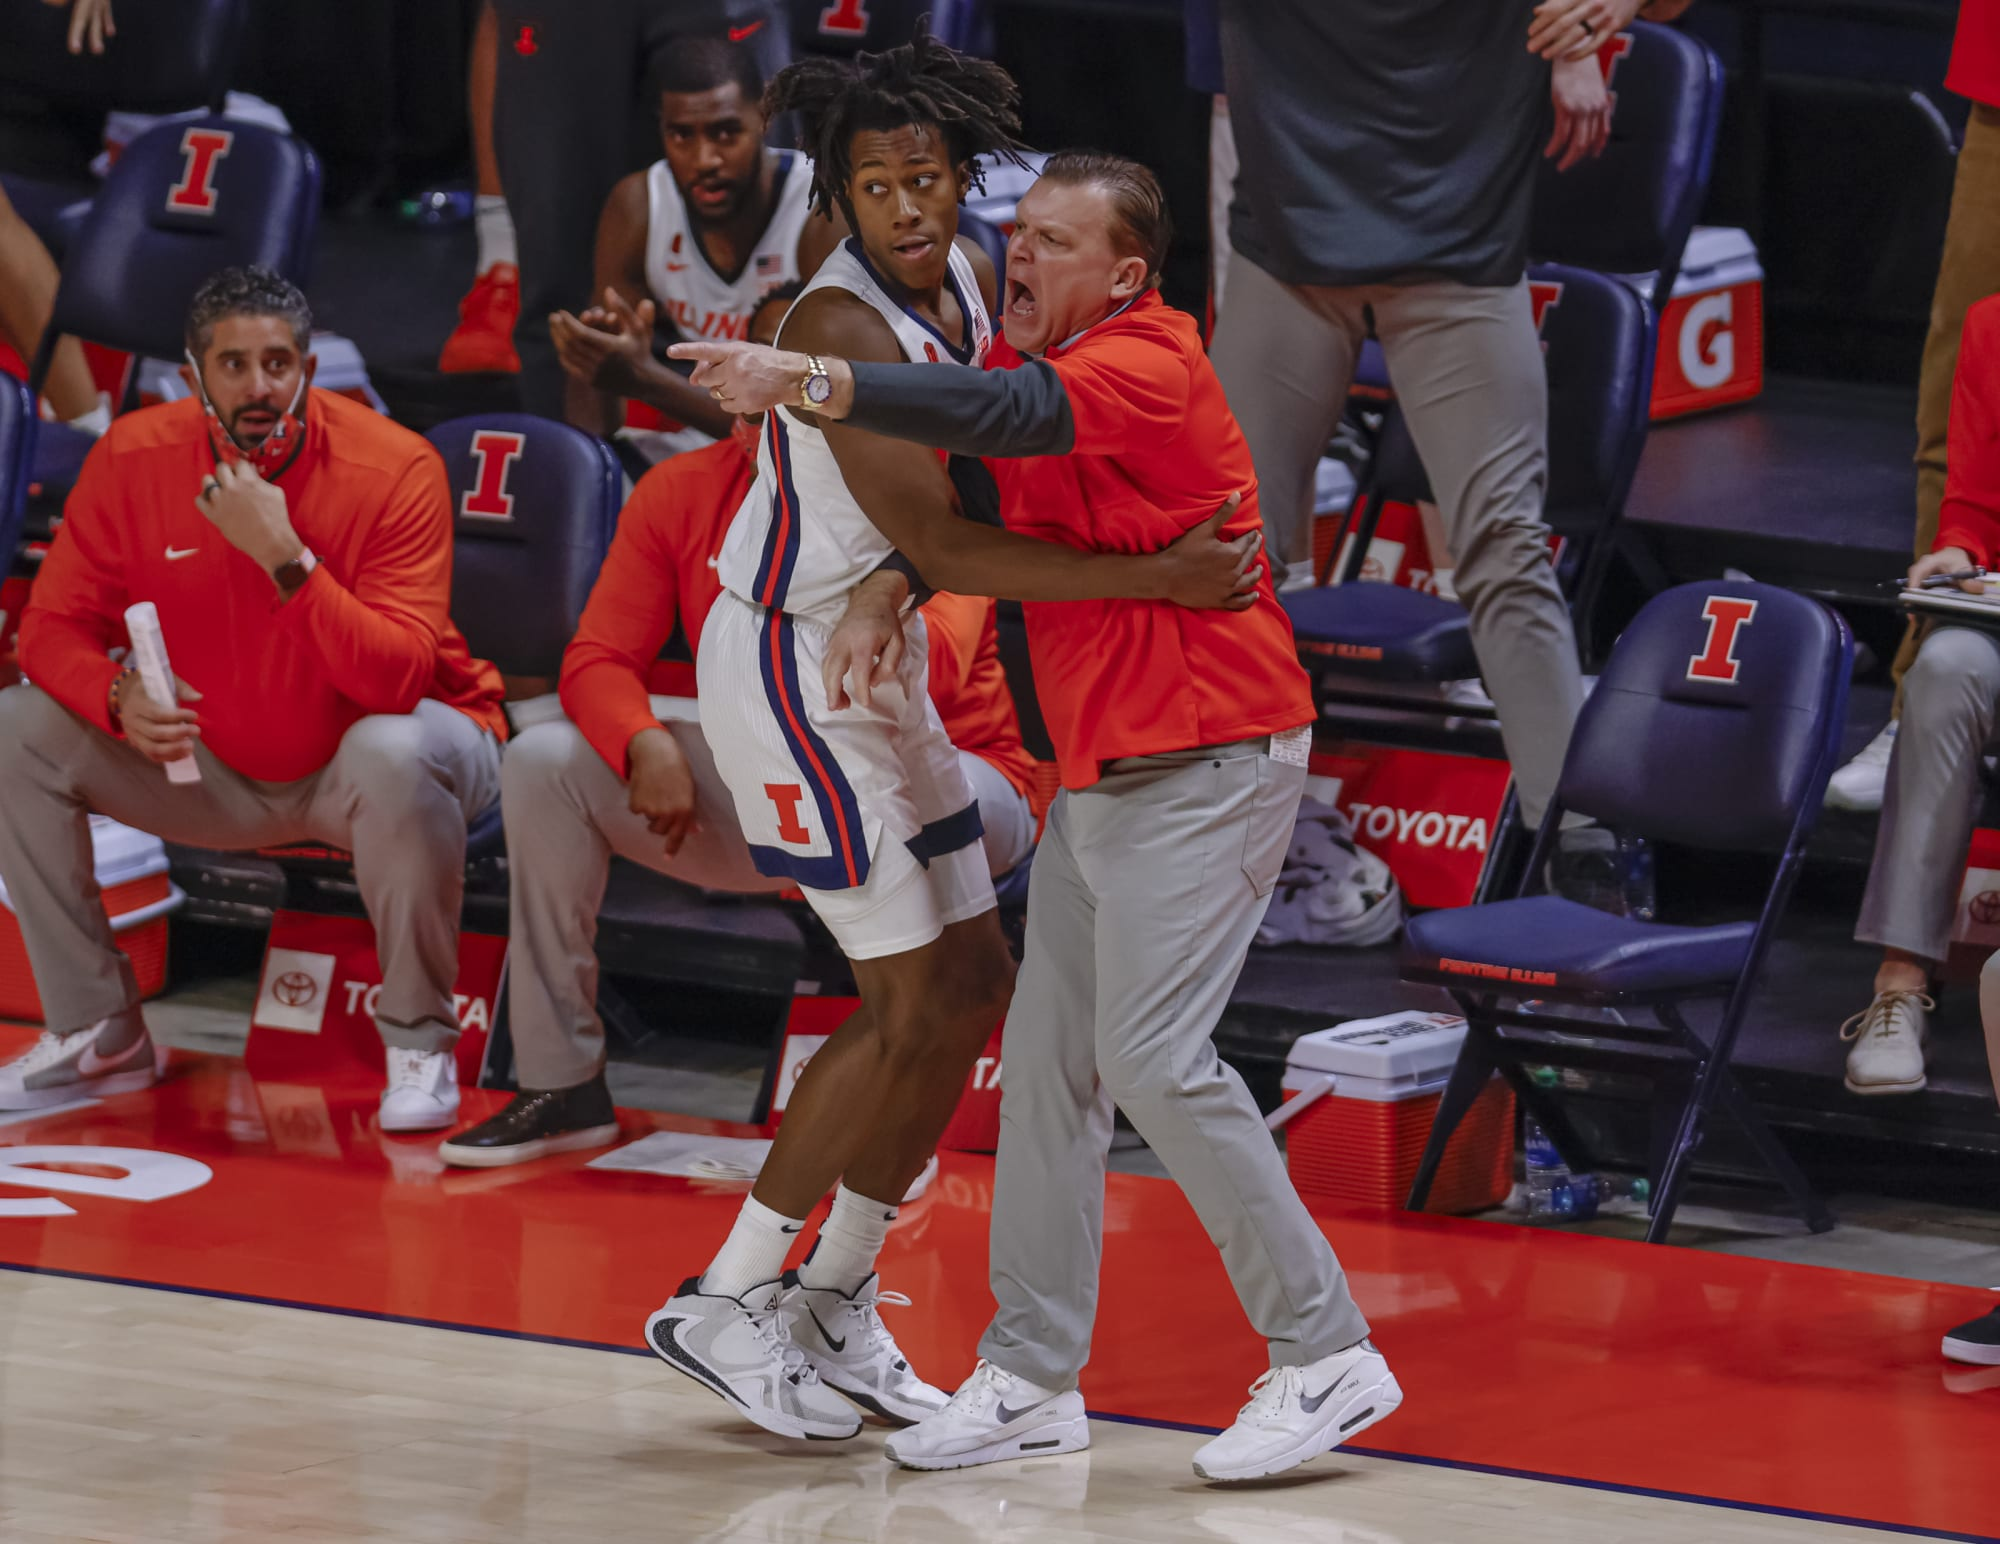 Illinois Basketball: 4 observations from the Illini loss to Maryland